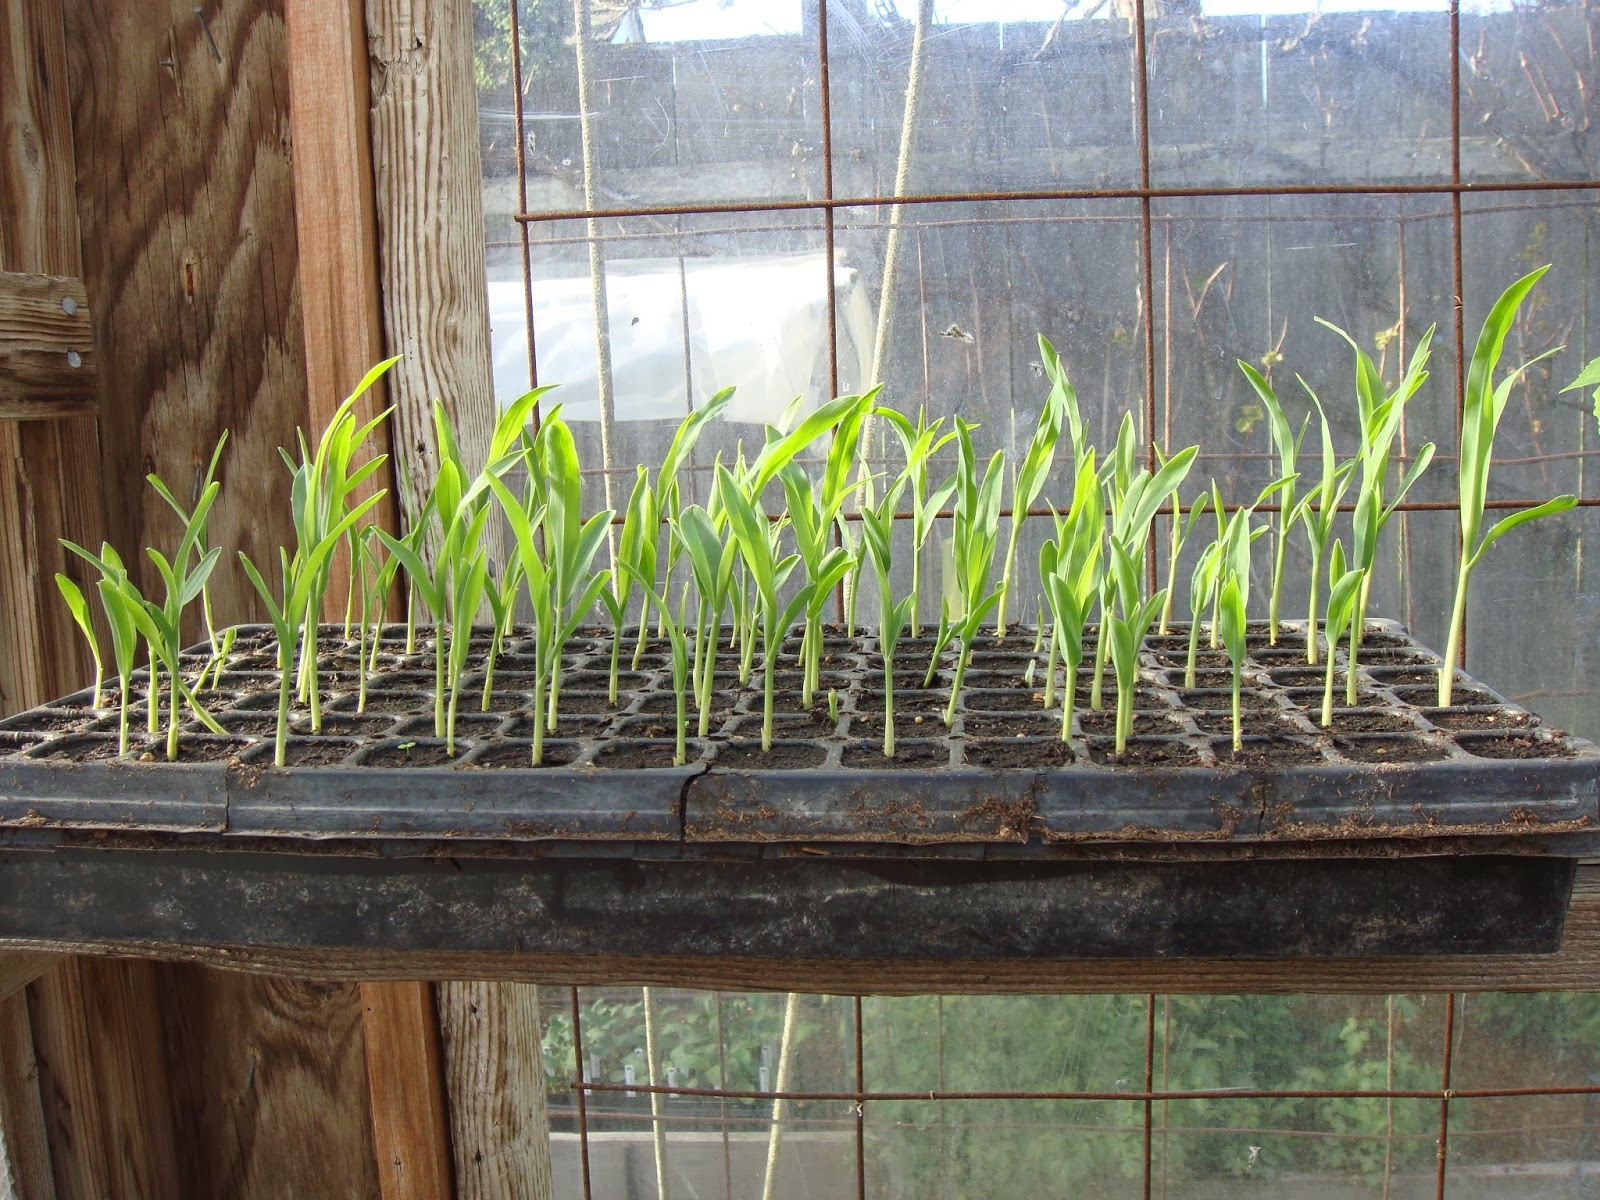 Corn Seedlings in The Garden Oracle's Greenhouse.  The Corn Plants in This Photo are About Three Weeks Old from the Date of Sowing and are Almost Ready for Planting Out in The Garden.  This Corn Has Been Sown in a Full Flat of 98 Mini-Cells with One or Two Seeds Per Cell, Which is Enough Corn for About a 4X10 Foot Garden Planting Bed with the Plants Spaced 8 Inches Apart and a 4 Inch Border, Or a 4X16 Foot Bed if You Space The Plants One Foot Apart with a 6 Inch Border.  Make Sure to Check Out the Large Assortment of Corn Seeds Available Through the Vegetable Seeds Tab at the Top of this Site; Including Early and Late Varieties, Sweet Corn, Super Sweet, Triple Sweet and Specialty Types.